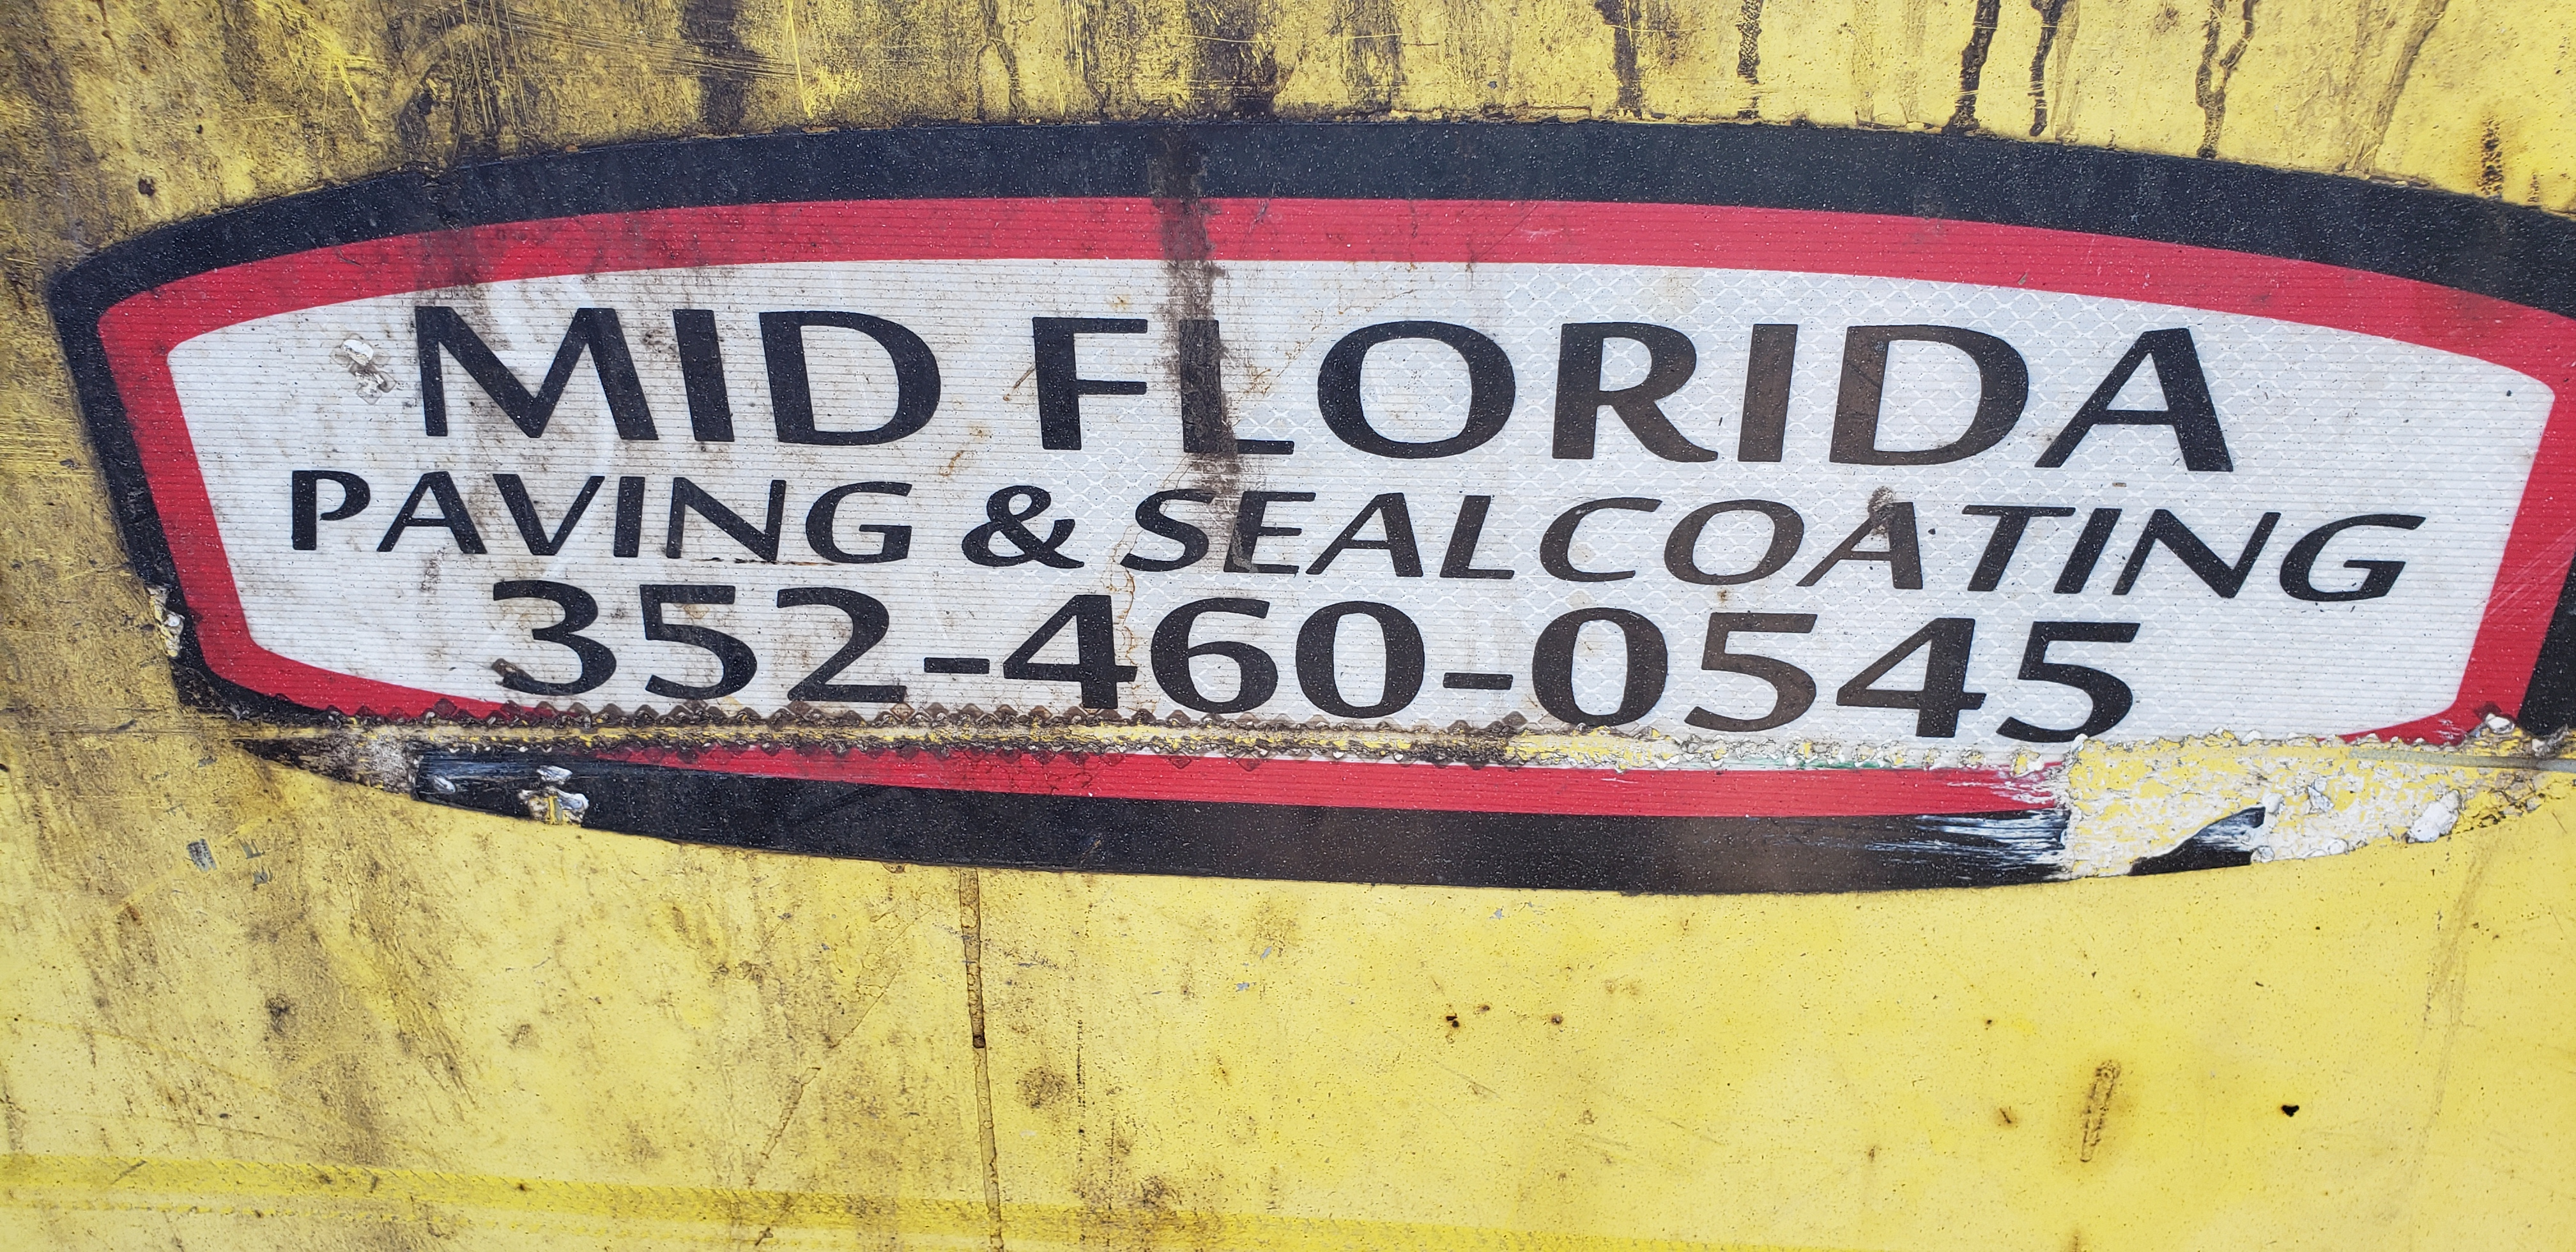 09-24-2019 MID FLORIDA Paving & Seal Coating